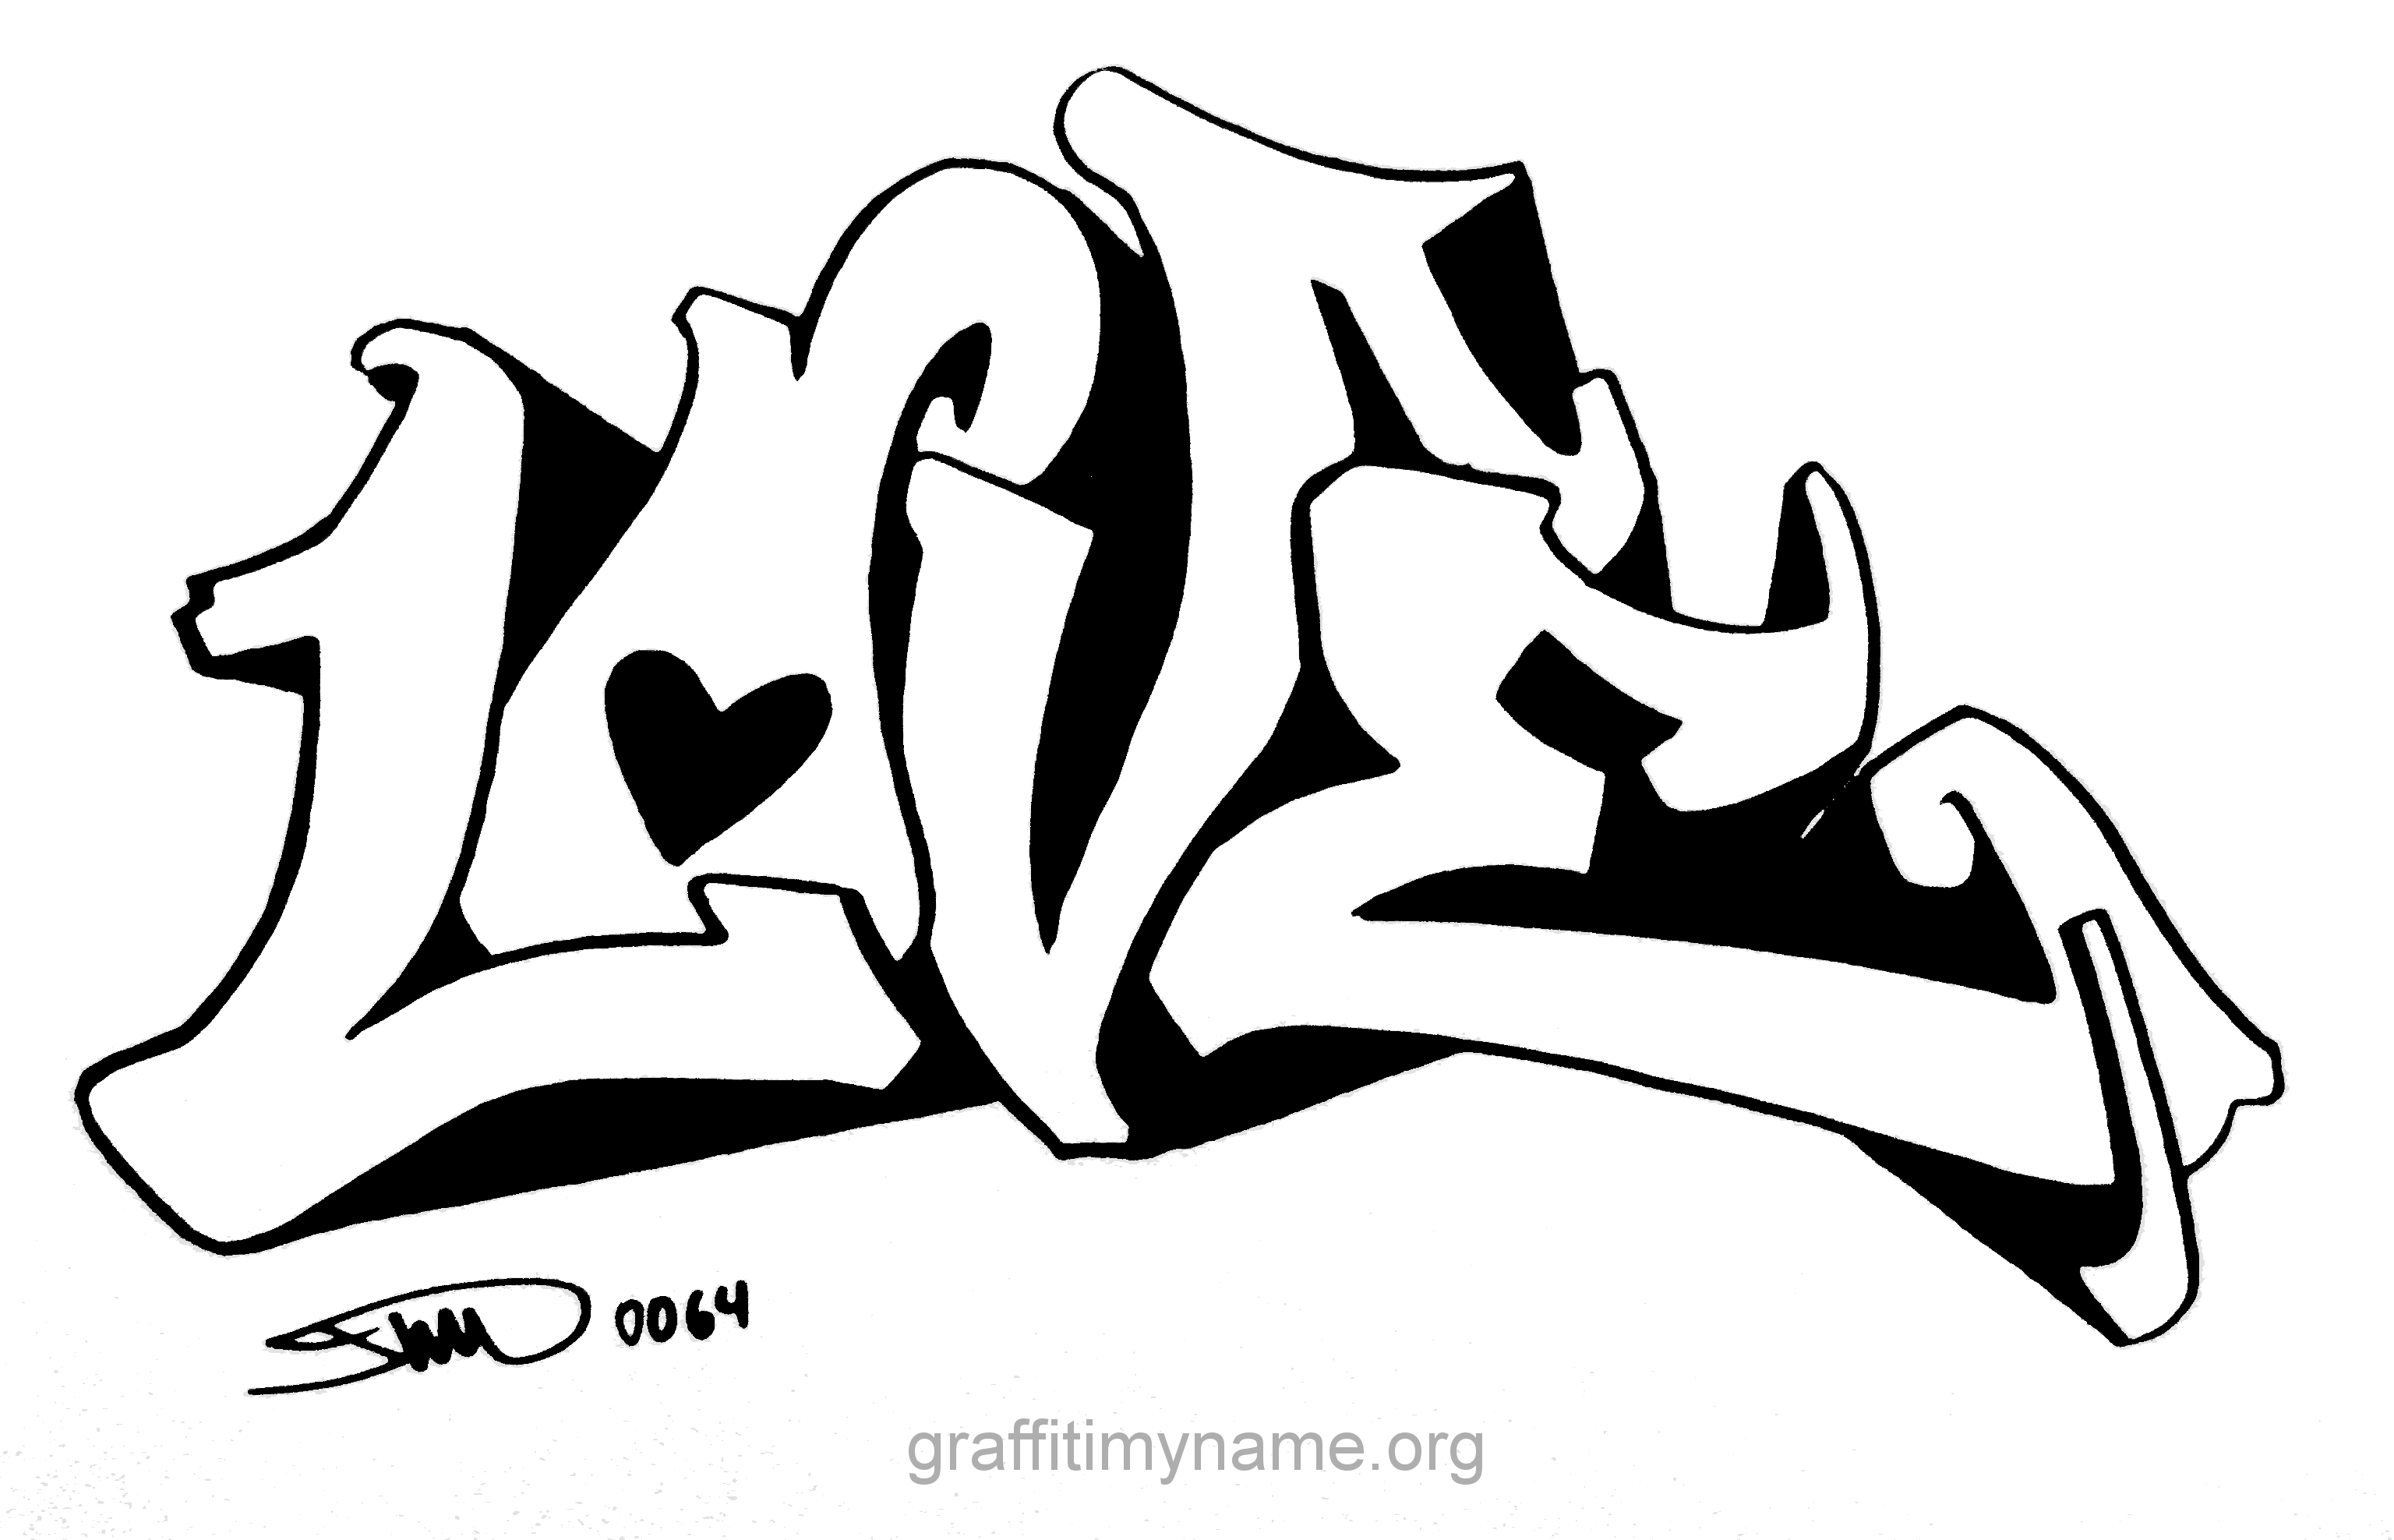 coloring graffiti pages online - photo#40